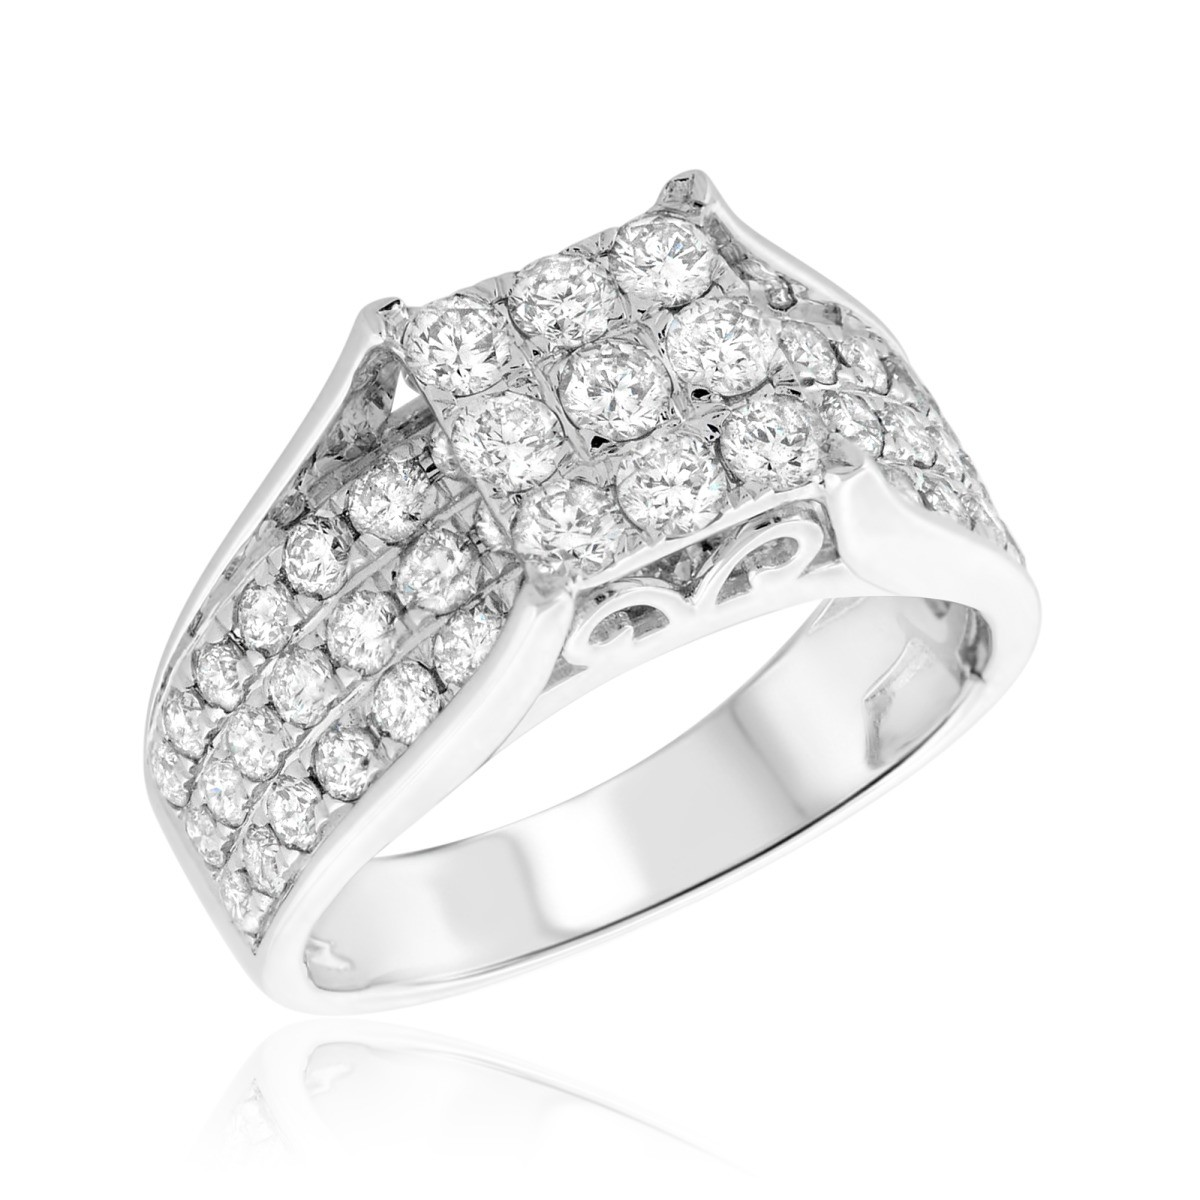 2 1/5 CT. T.W. Diamond Engagement Ring 10K White Gold